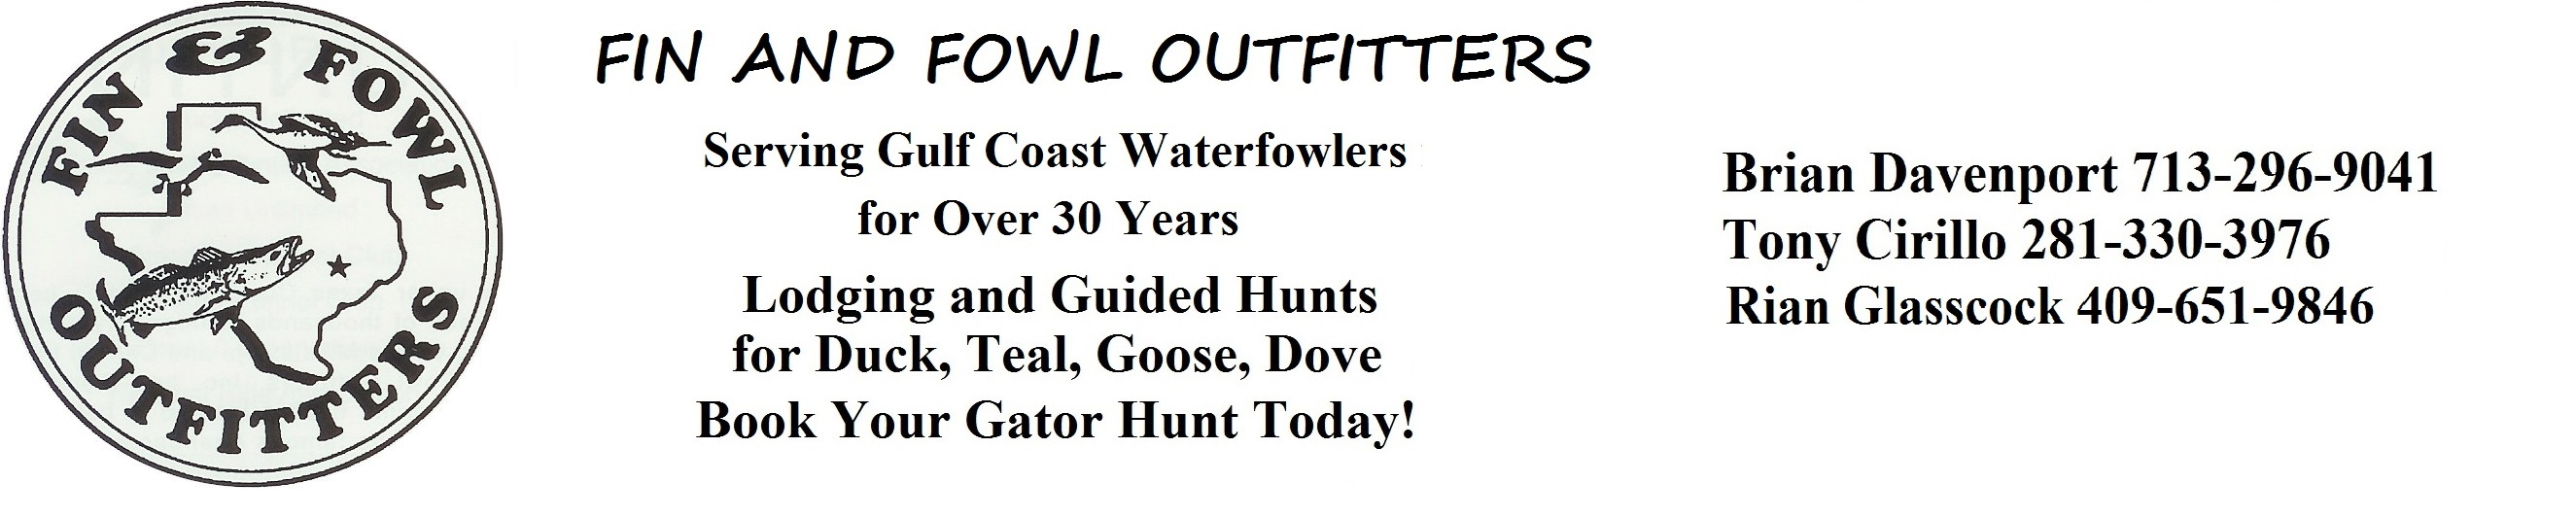 Fin and Fowl Outfitters